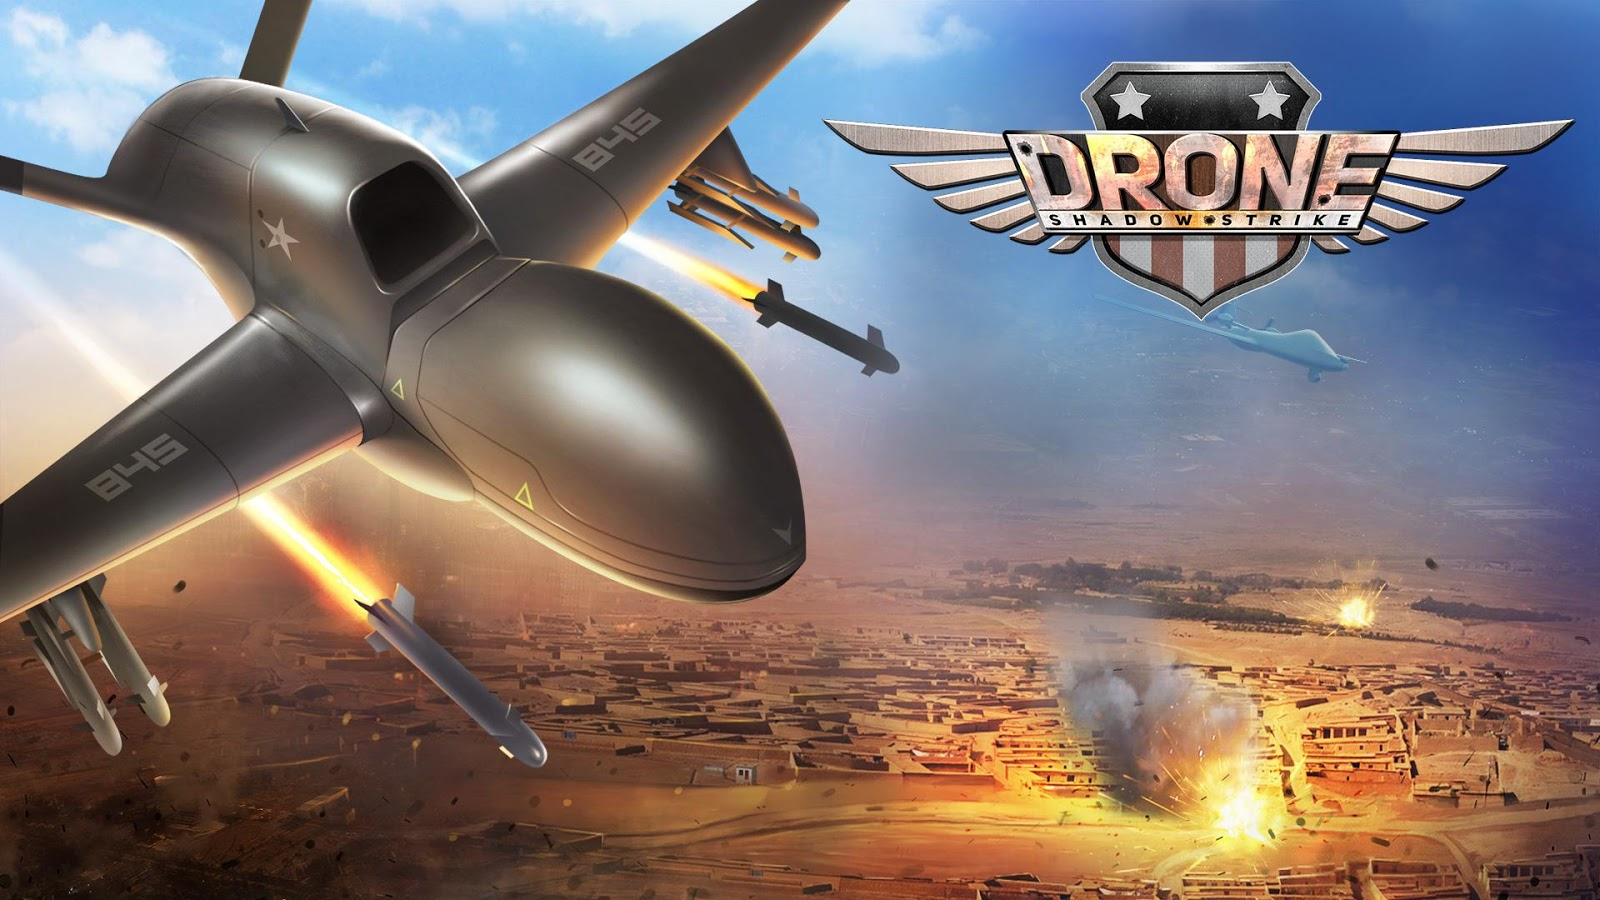 Drone: Shadow Strike